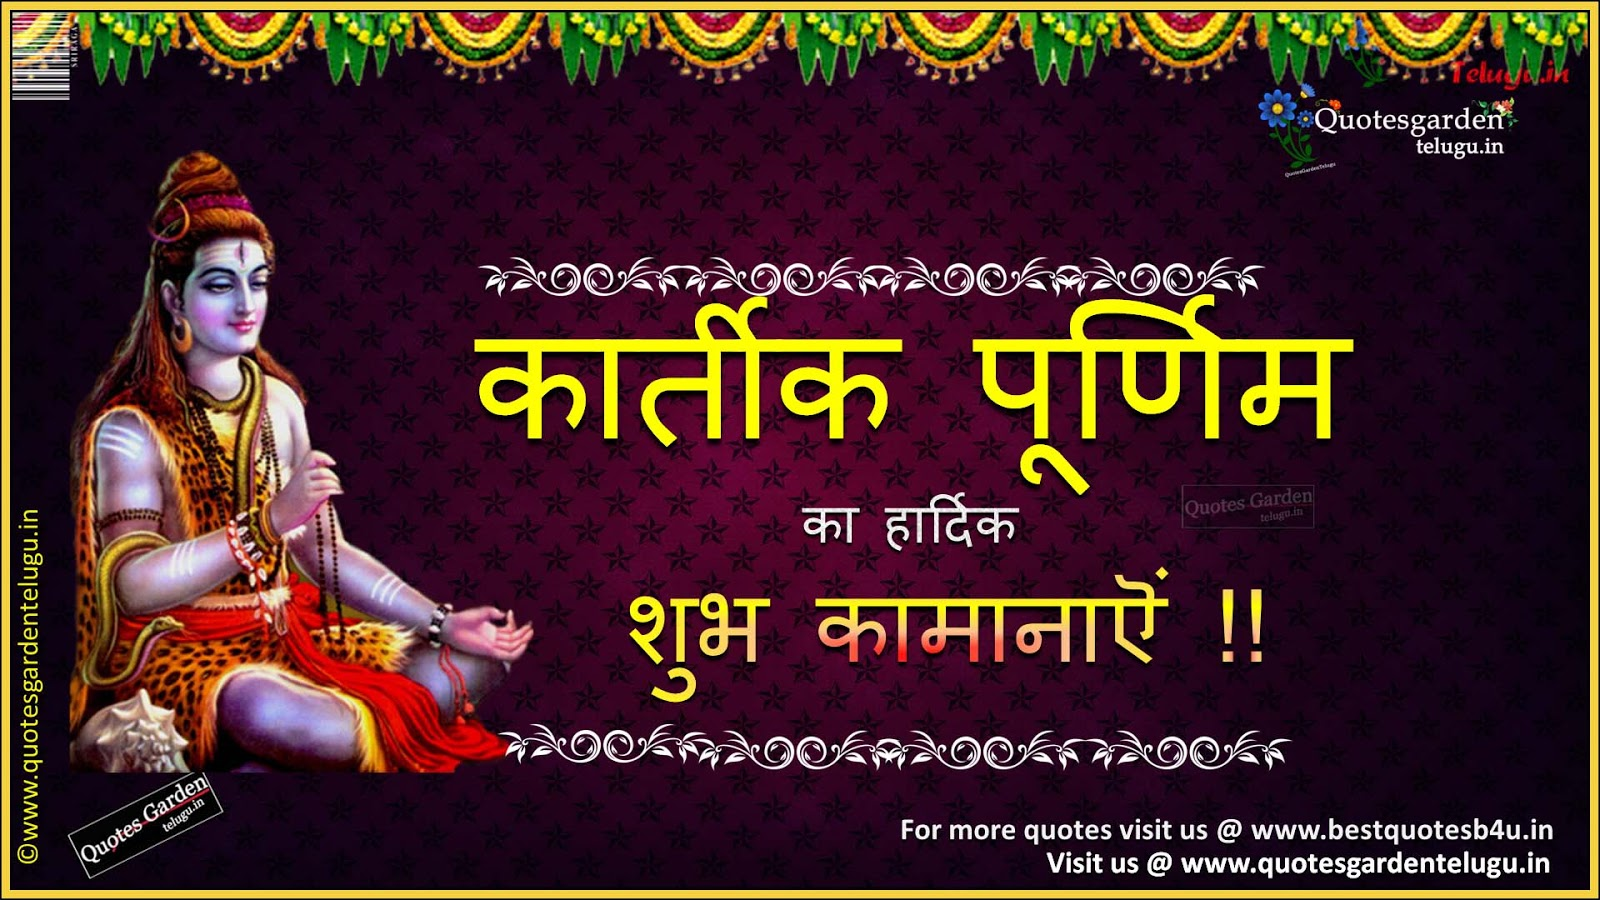 Beautiful Wallpapers With Quotes In Hindi Karthika Purnima Greetings Wallpapers In Hindi Quotes